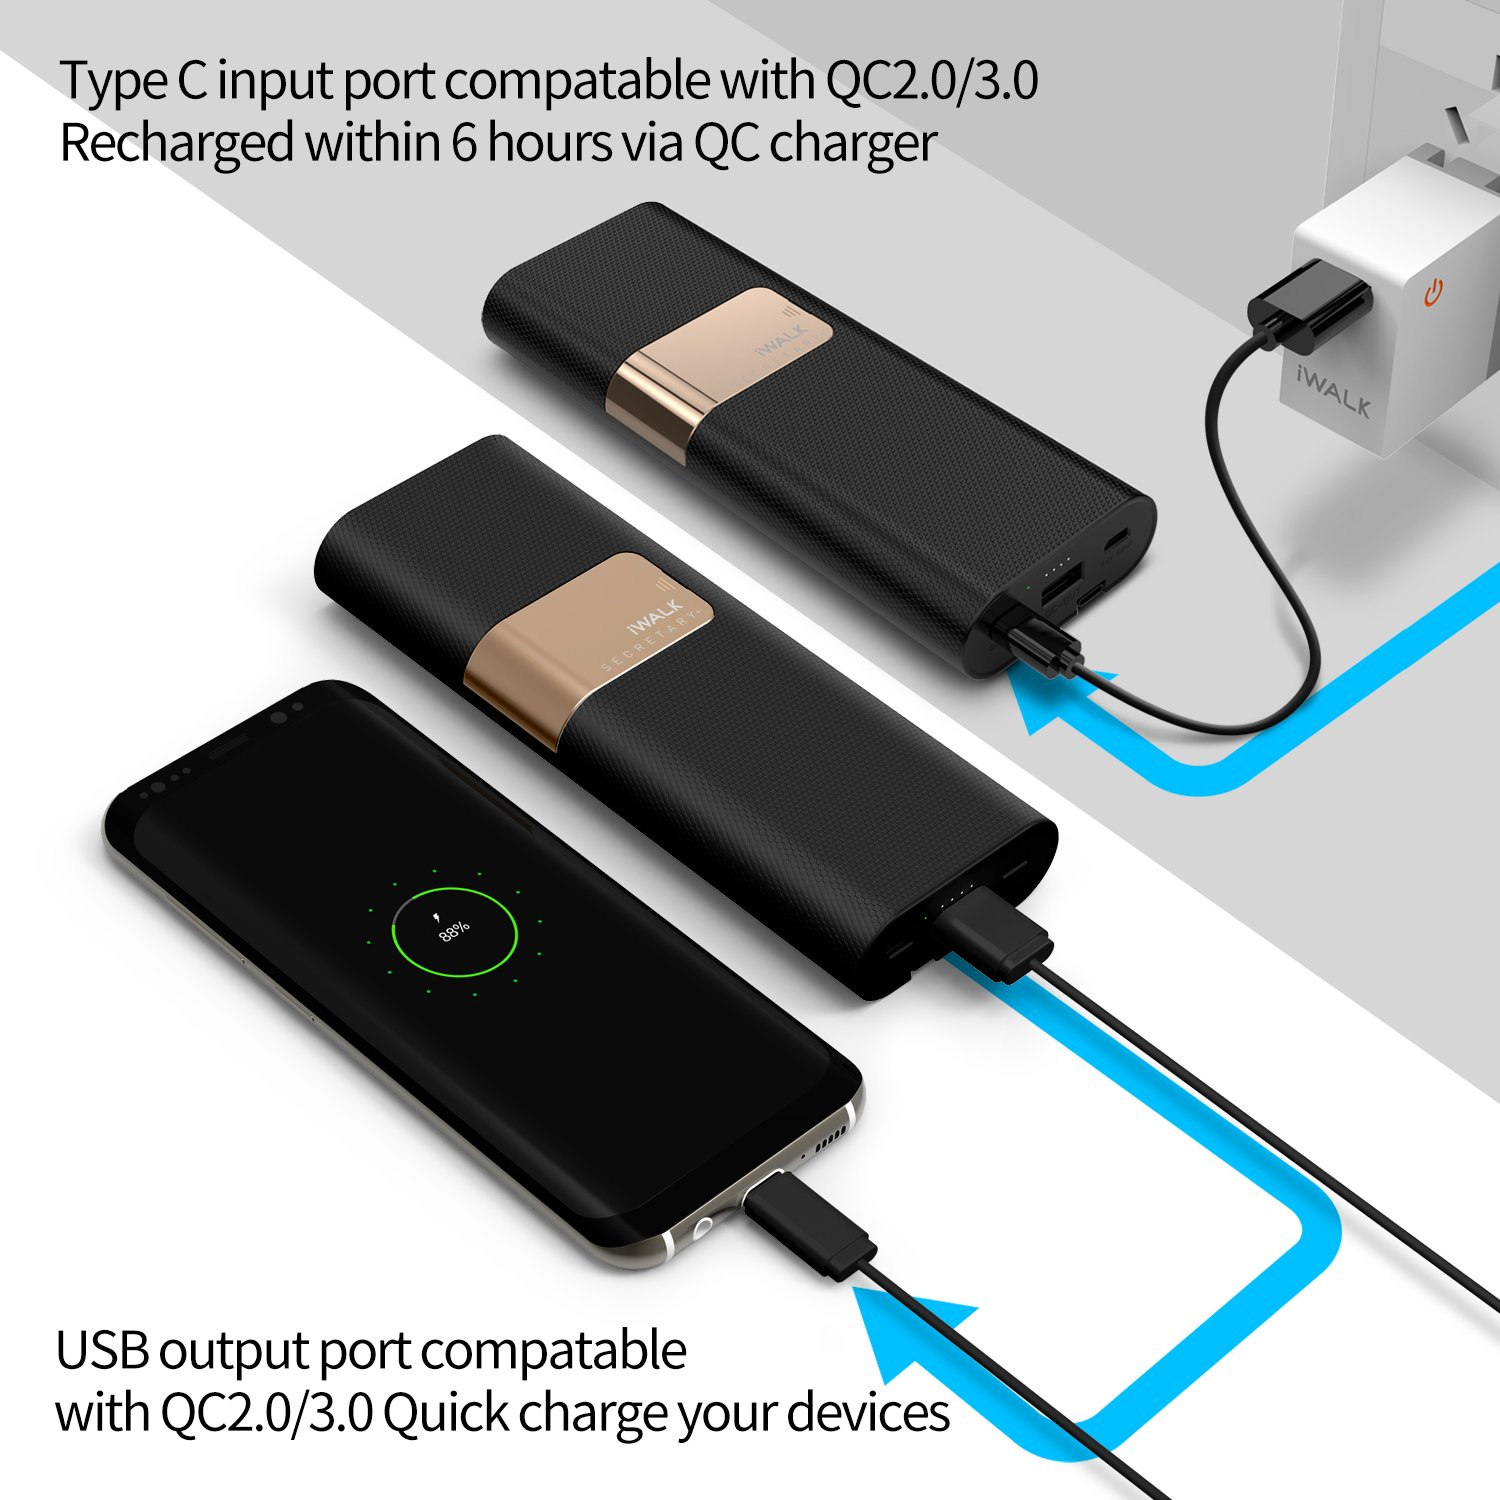 Iwalk 20000mah Power Bank Quick Charge Qc30 20 Built Full Usb Compliance Battery Charger In Type C Micro Cables Portable External Pack Compatible With